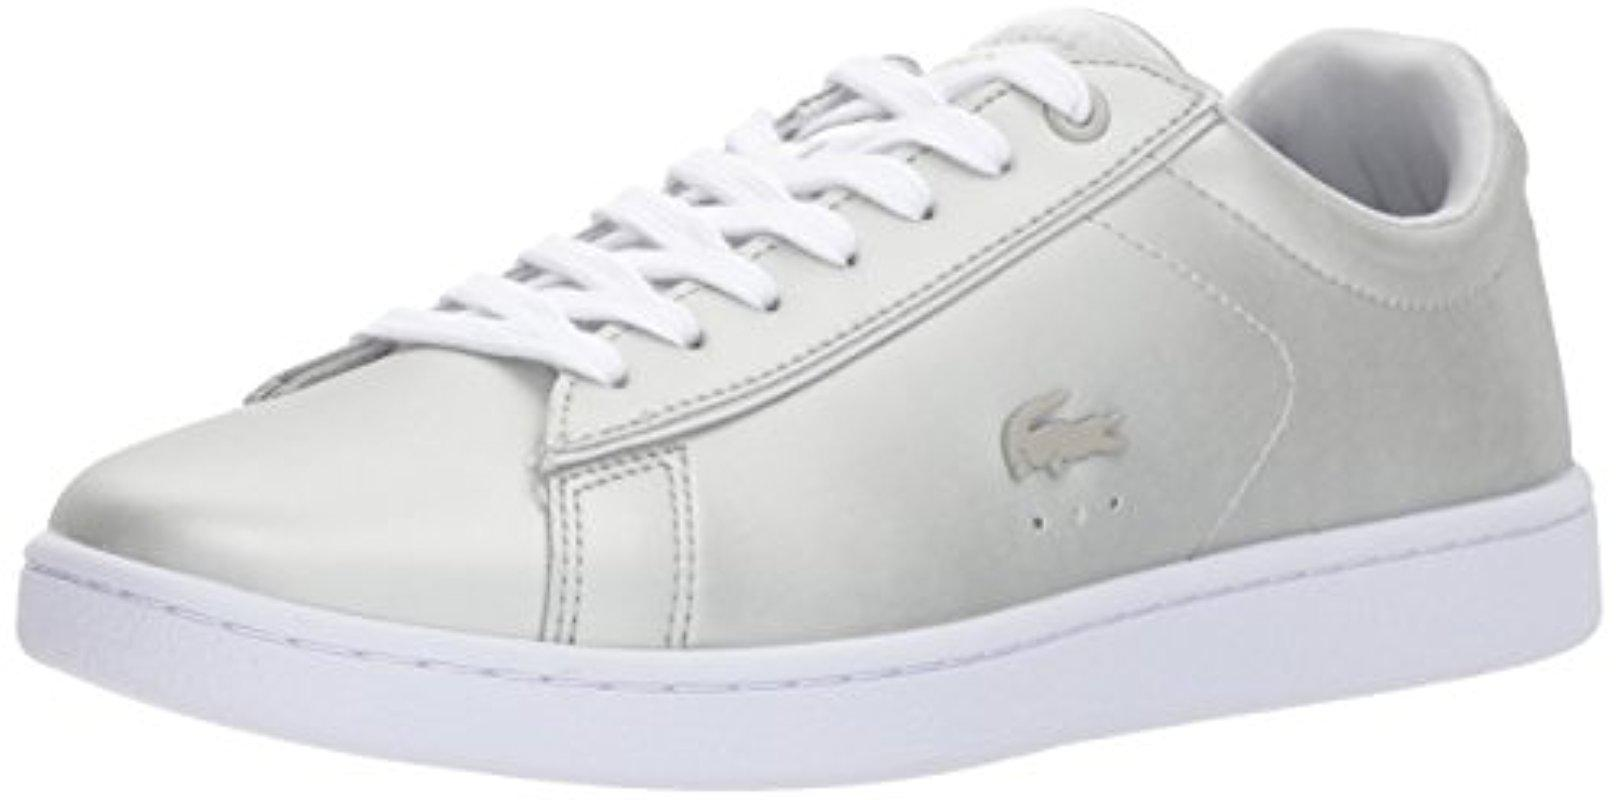 Femmes Chaumont 118 1 Spw Chaussure Lacoste H66HKfVeLW